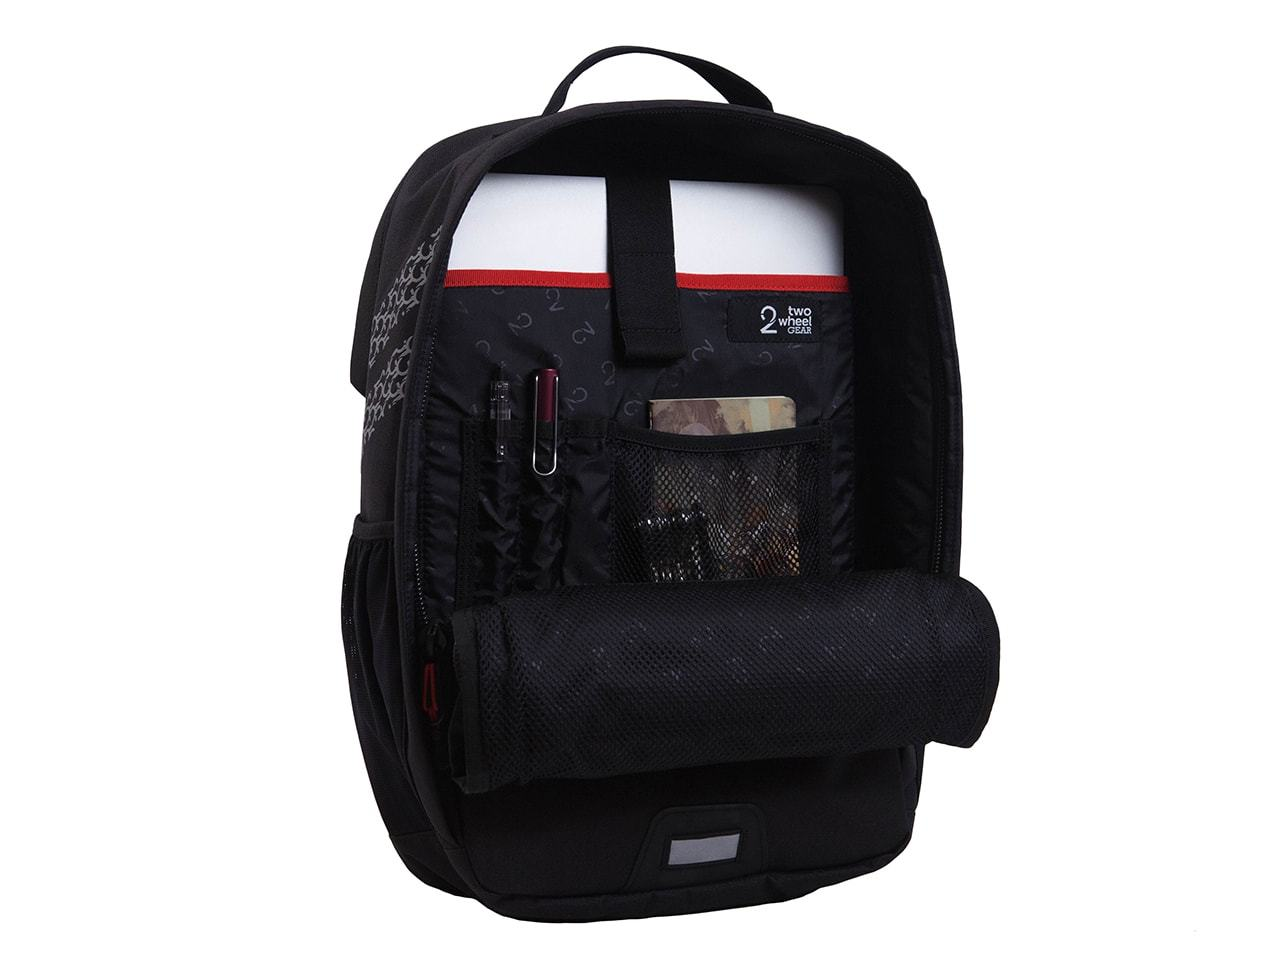 Pannier Backpack Convertible - Black , Bags - Two Wheel Gear, Two Wheel Gear - 3